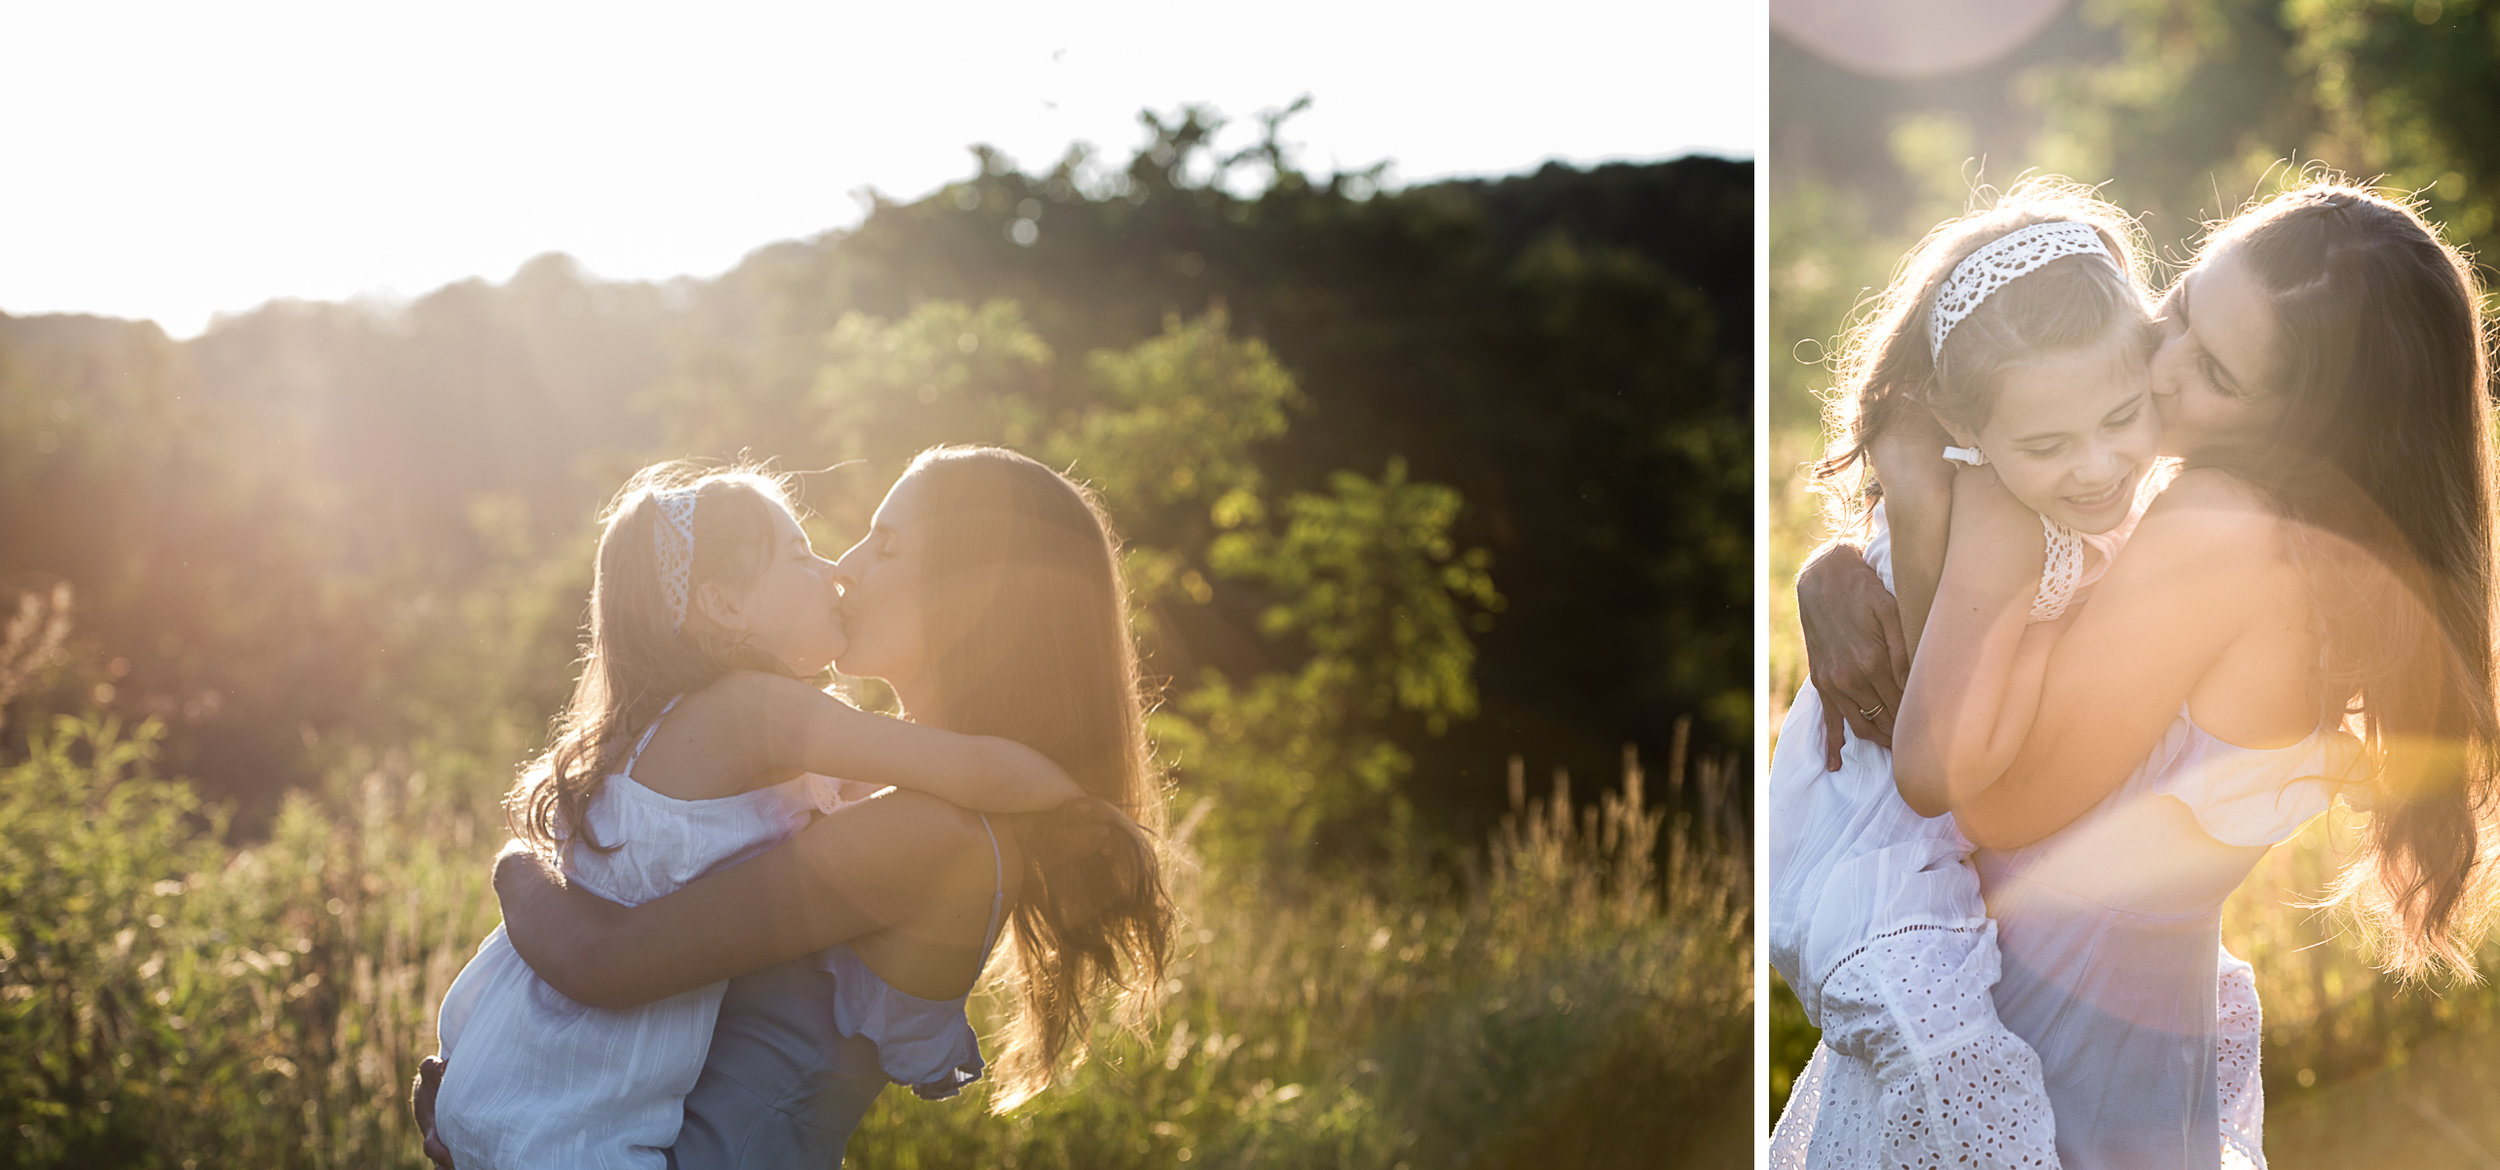 Mother Daughter Photography Sessions, Ligonier PA photographer.jpg